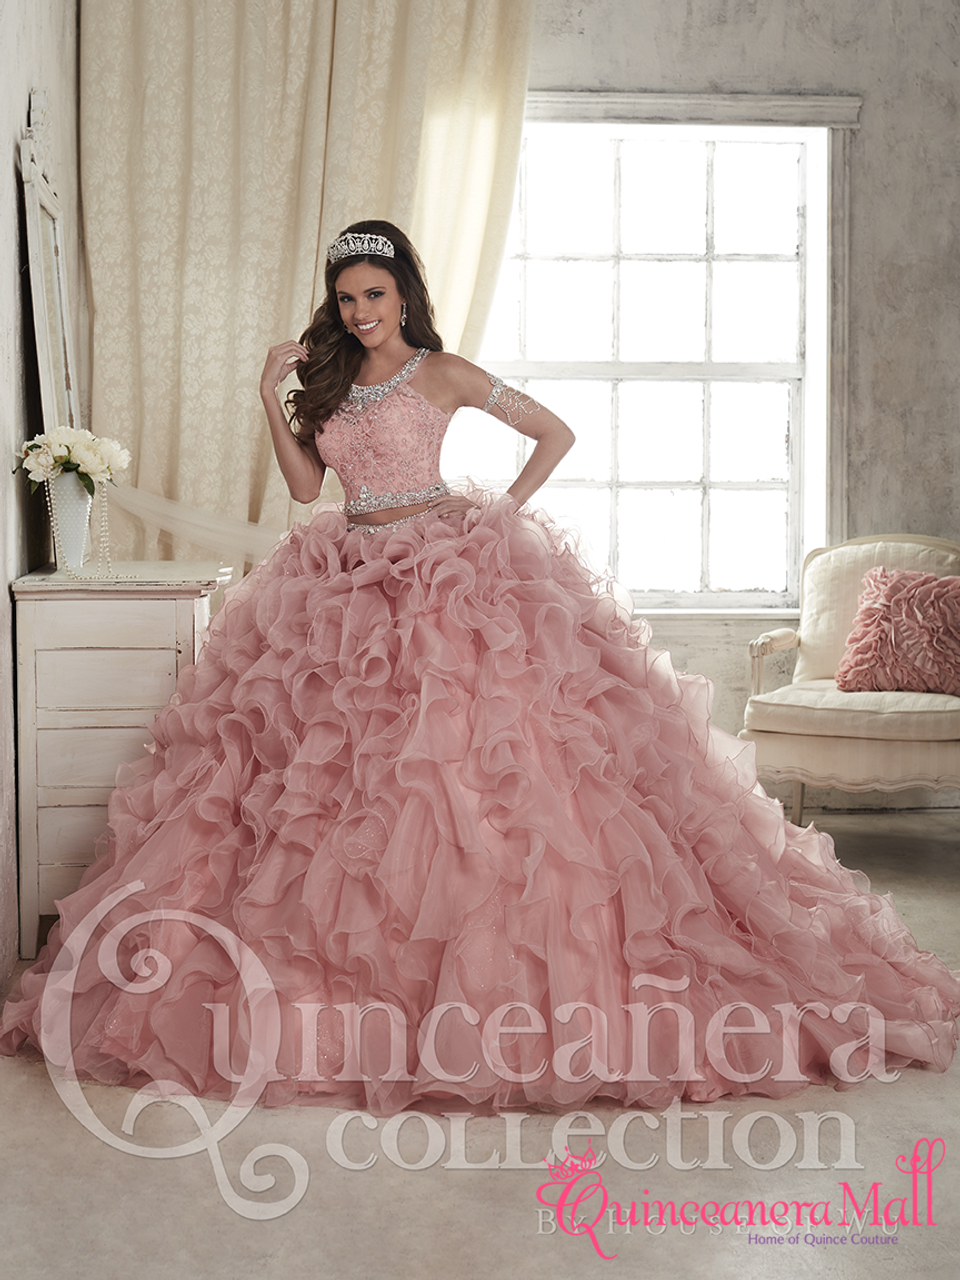 95489267217a1 Quinceanera Dress #26813 - Quinceanera Mall